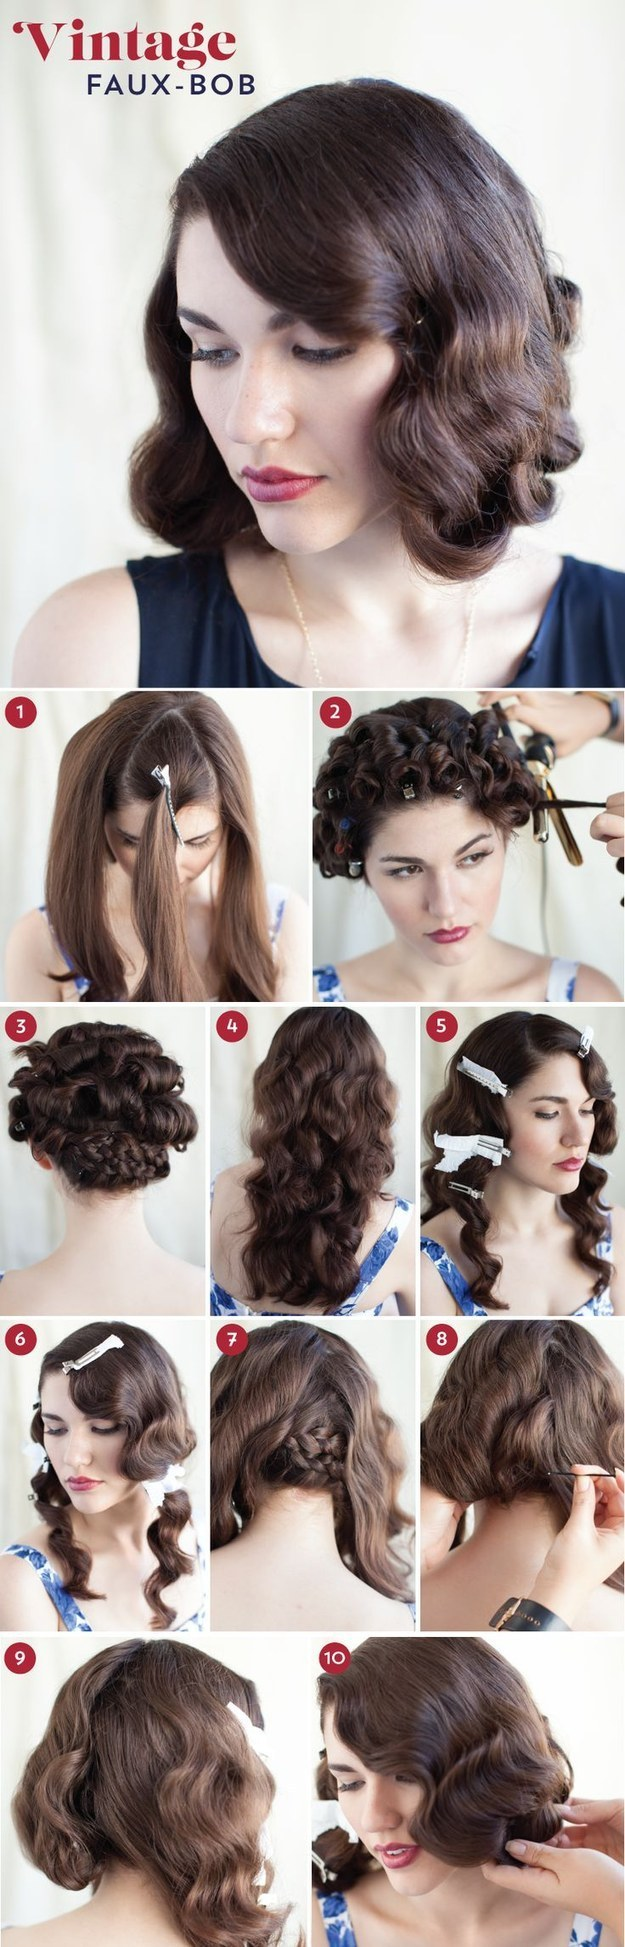 Miraculous 32 Vintage Hairstyle Tutorials You Should Not Miss Styles Weekly Hairstyle Inspiration Daily Dogsangcom